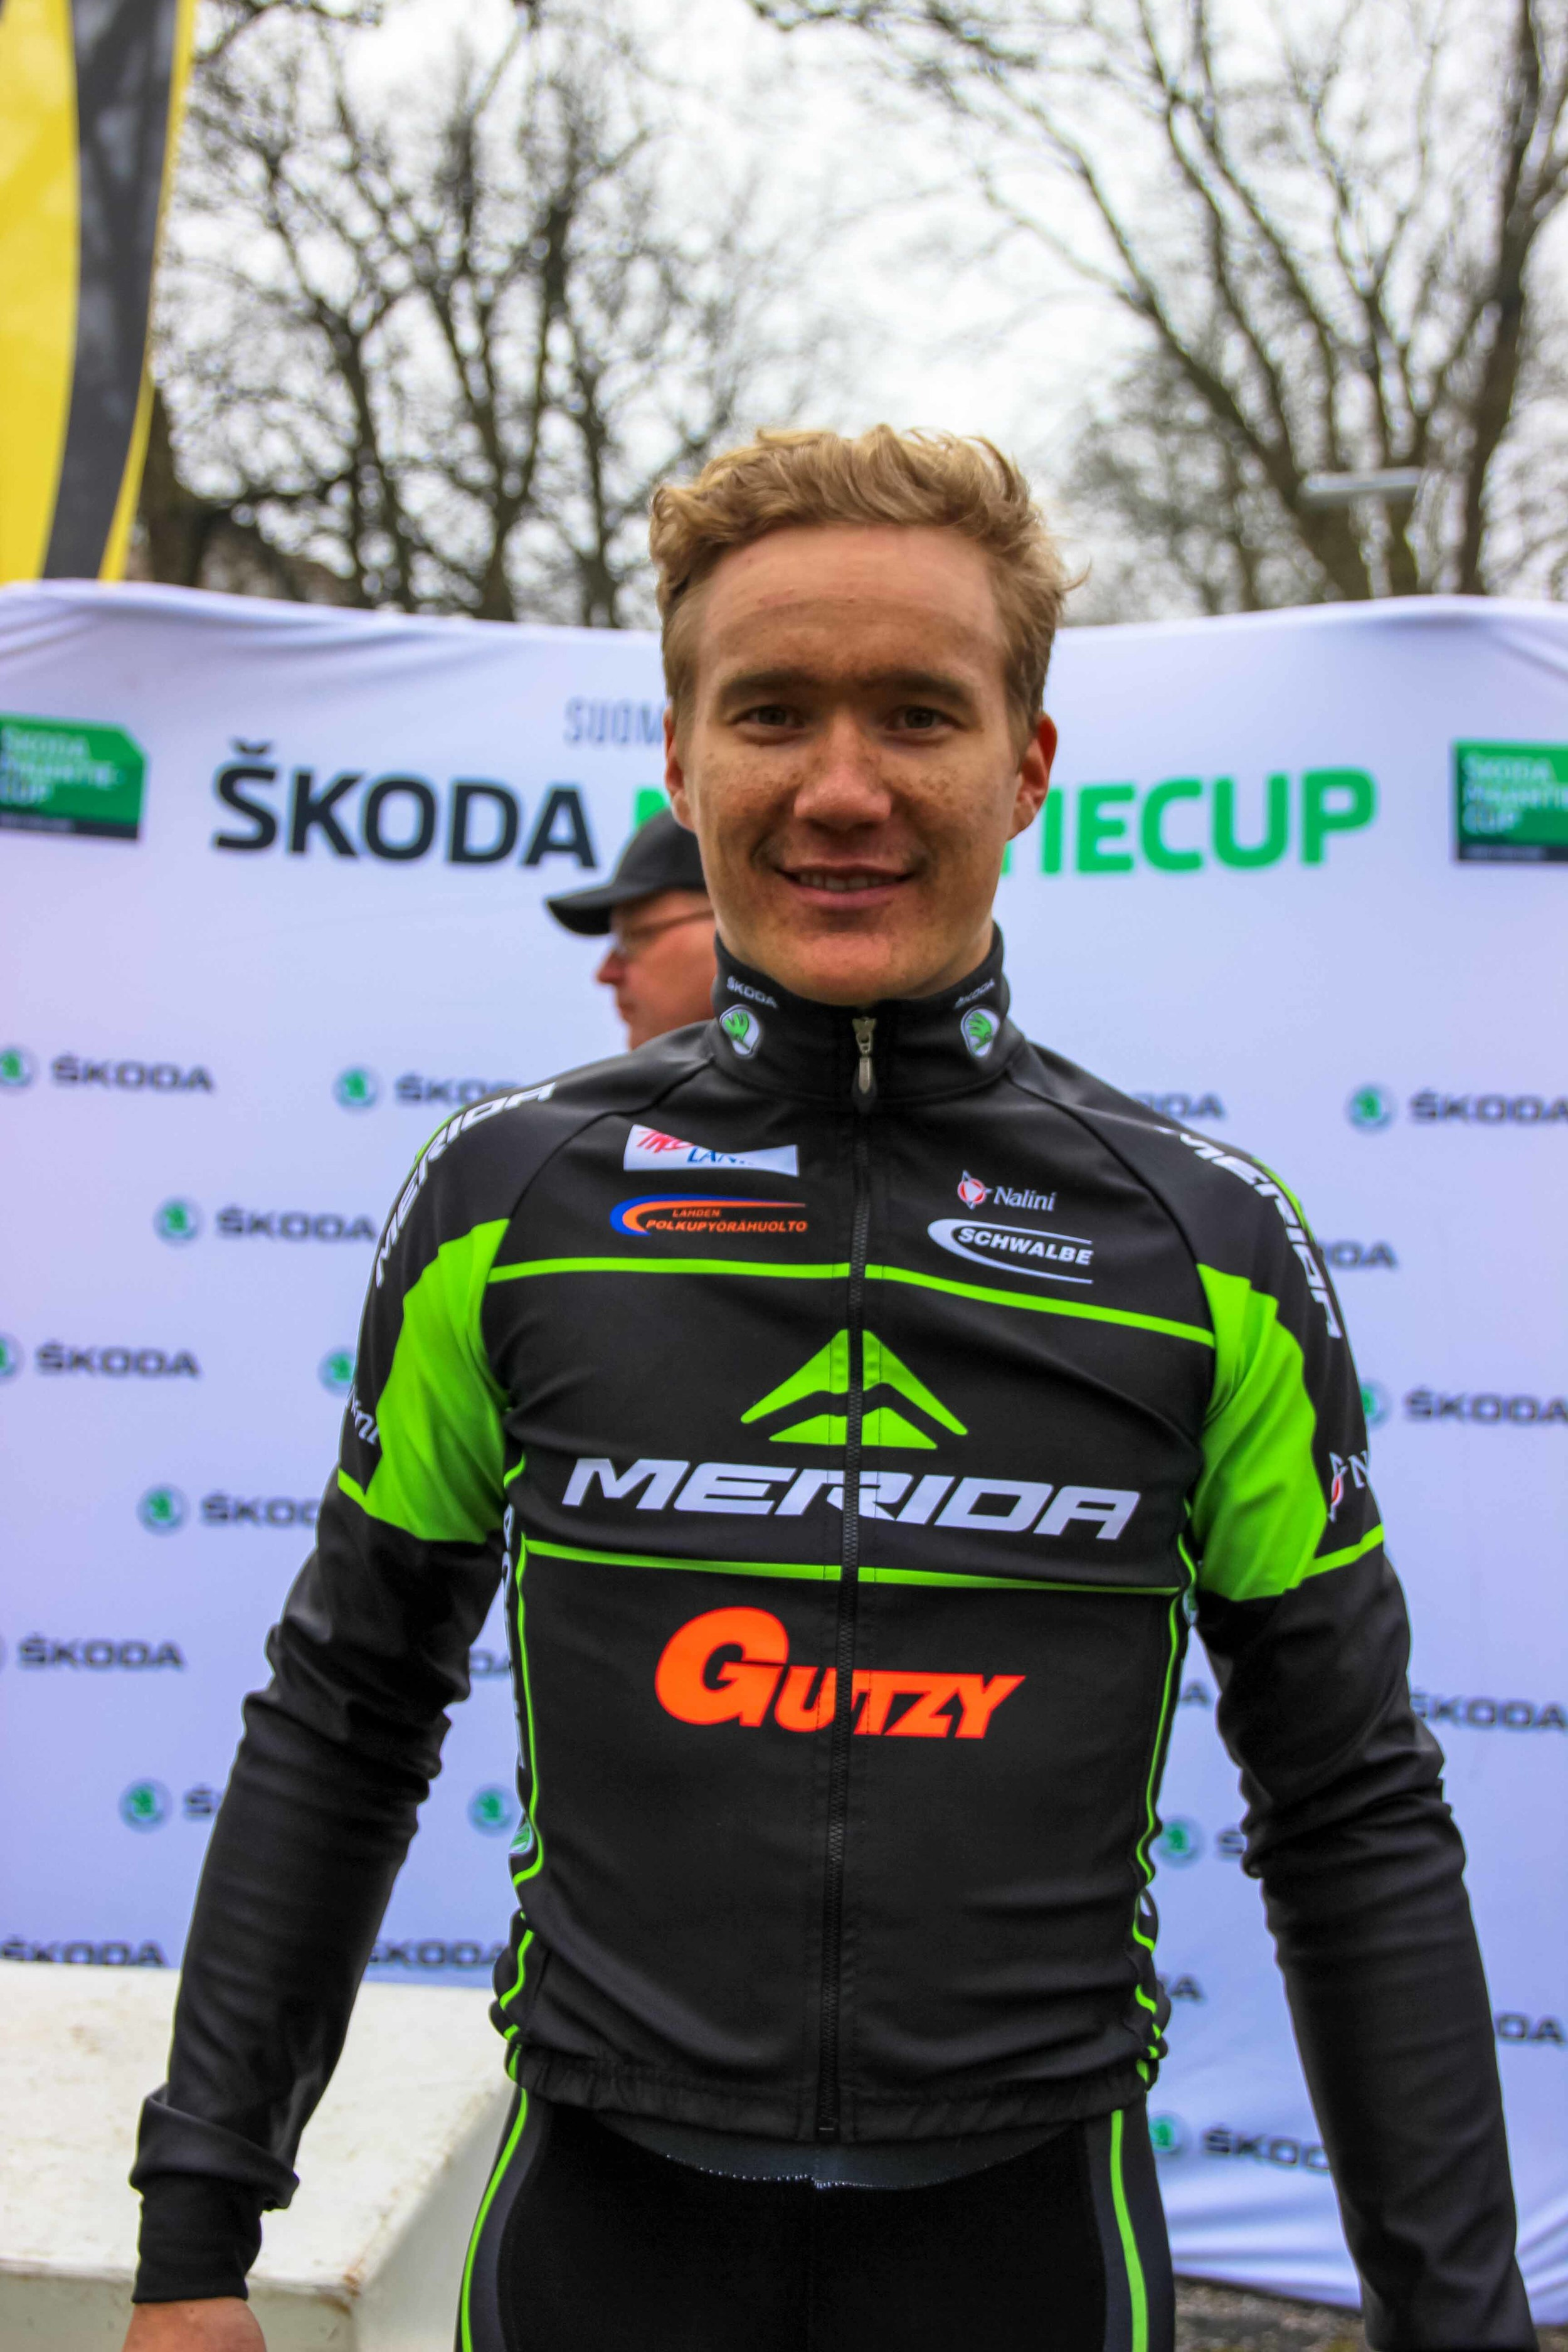 Roope Nurmi seemed pleased with the overall win, despite being second today